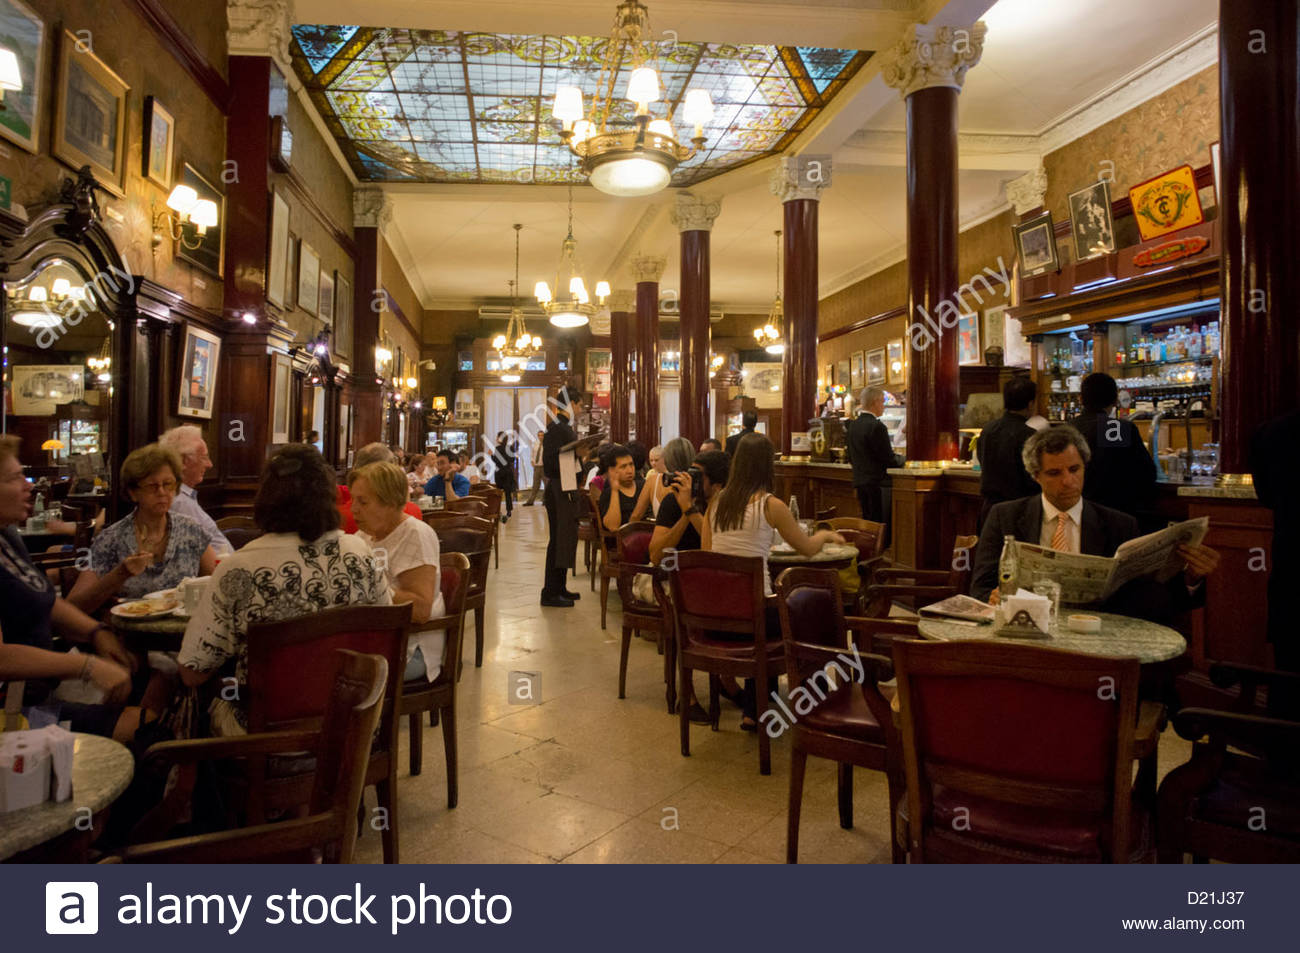 Interior design of the Cafe Tortoni, Avenida de Mayo, since 1958, Buenos Aires, Argentina - Stock Image